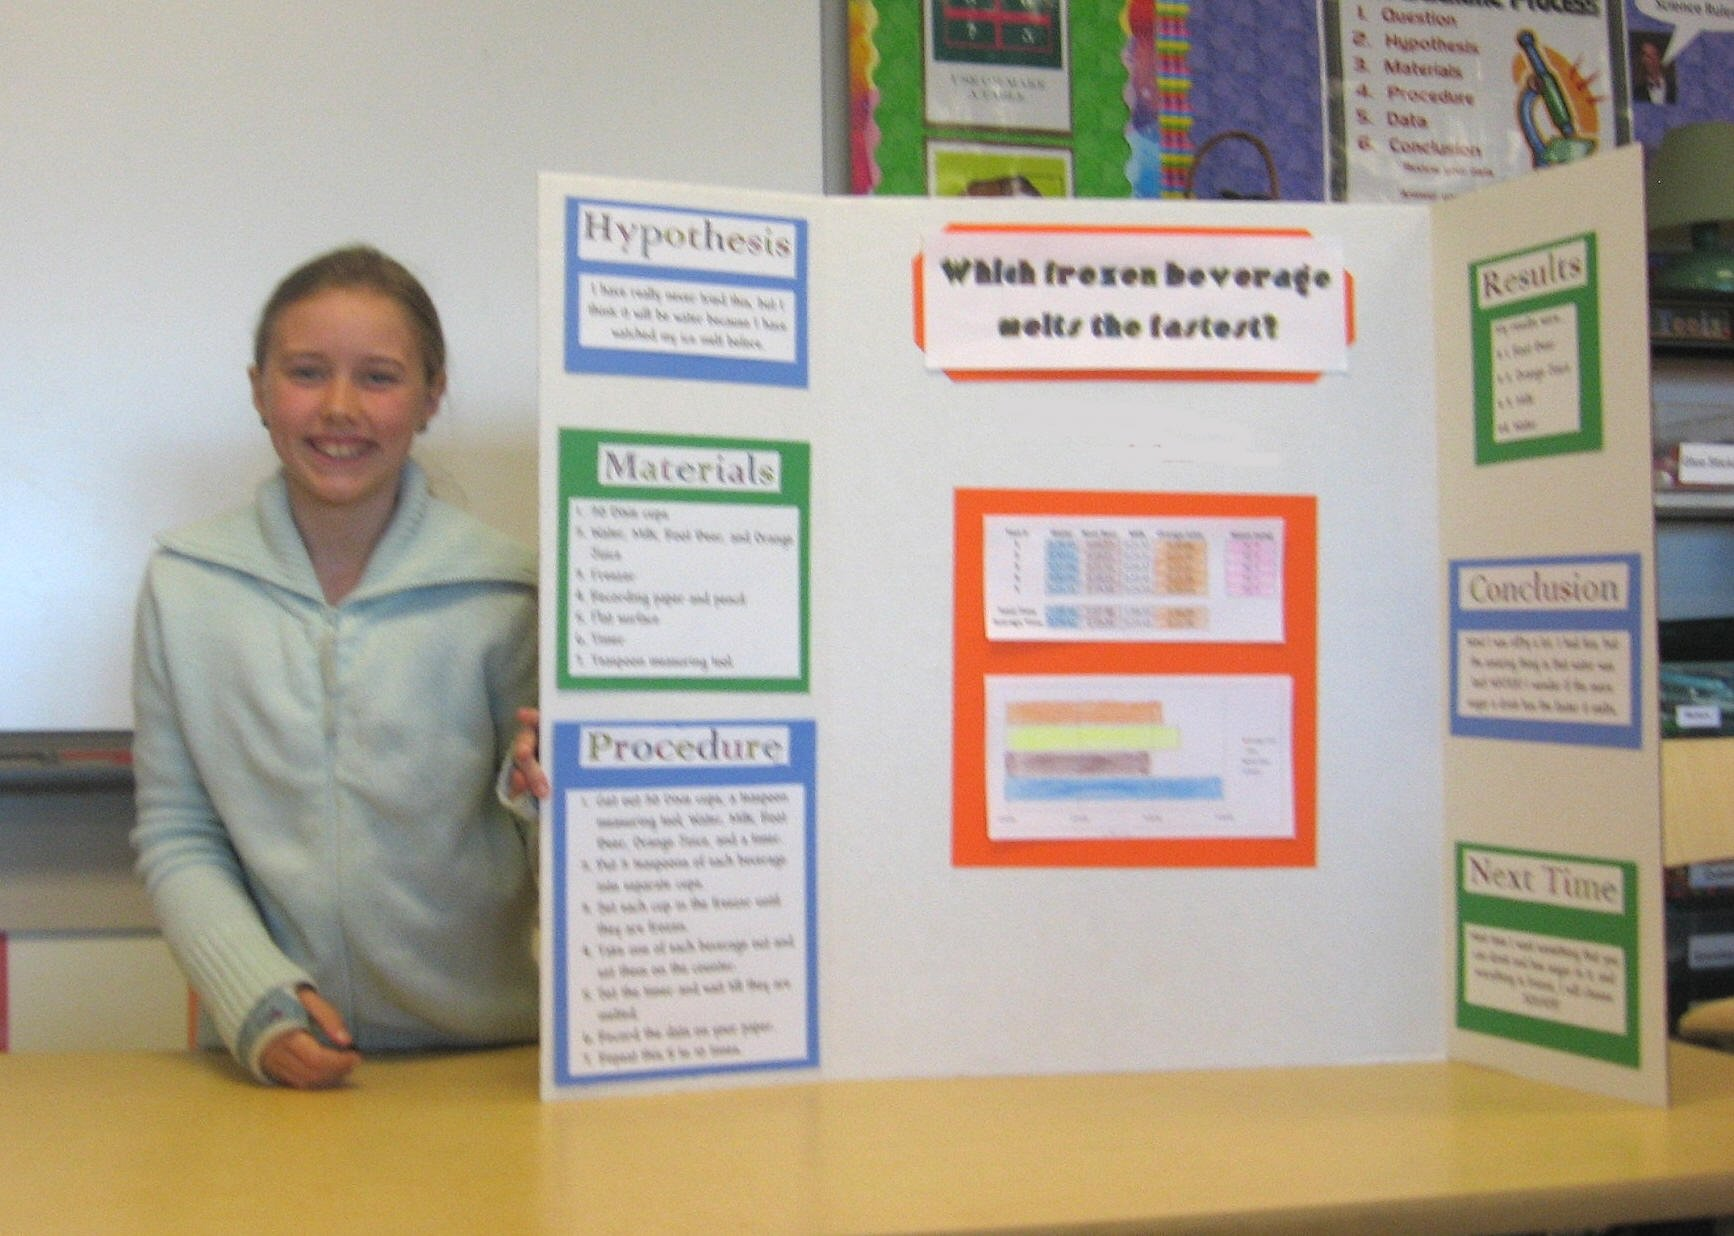 10 Great Science Fair Ideas 4Th Grade great science fair project ideaswhich popsicle melts the fastest 6